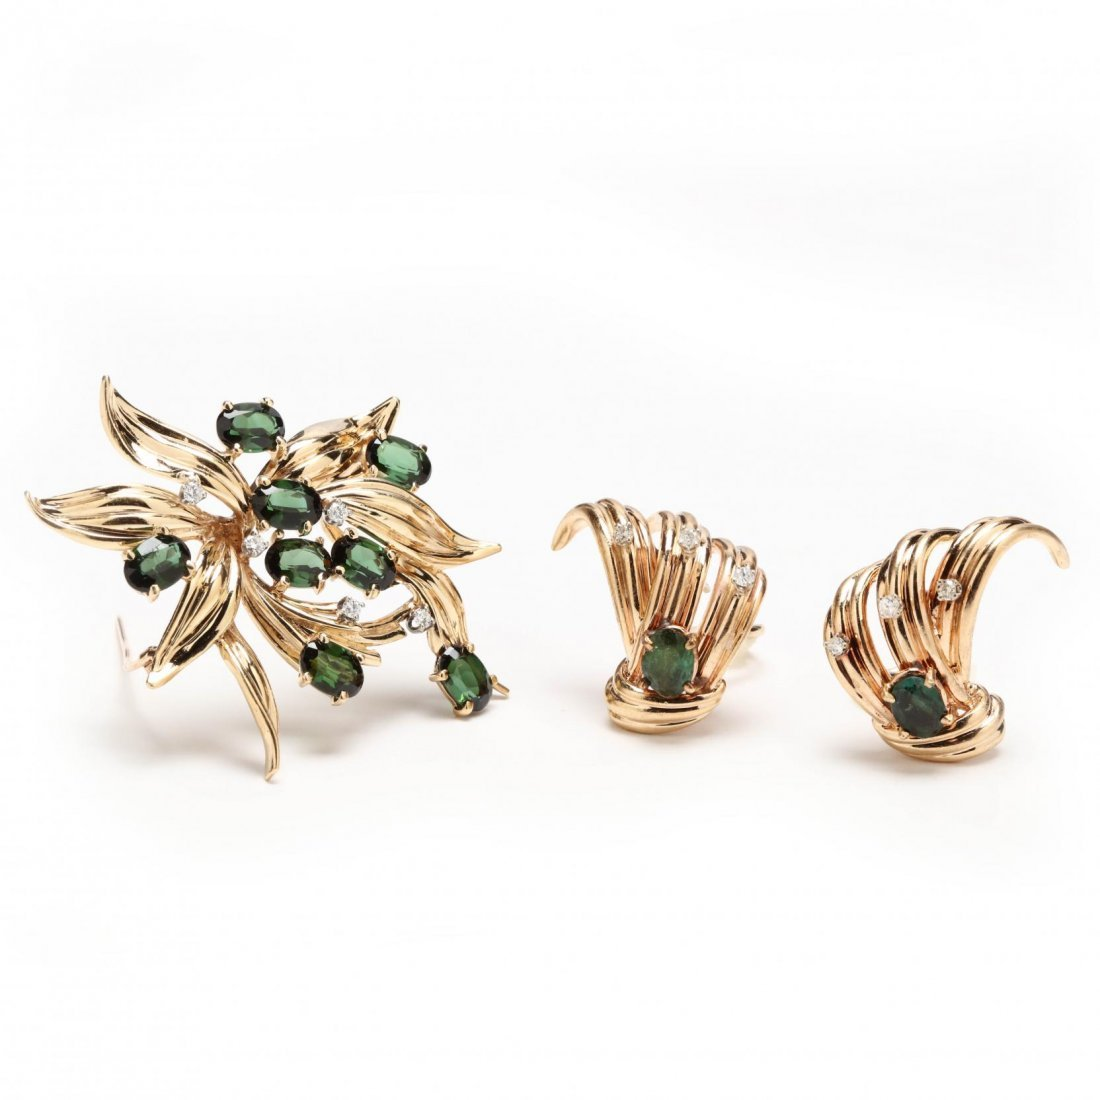 14KT Gold, Green Tourmaline, and Diamond Suite